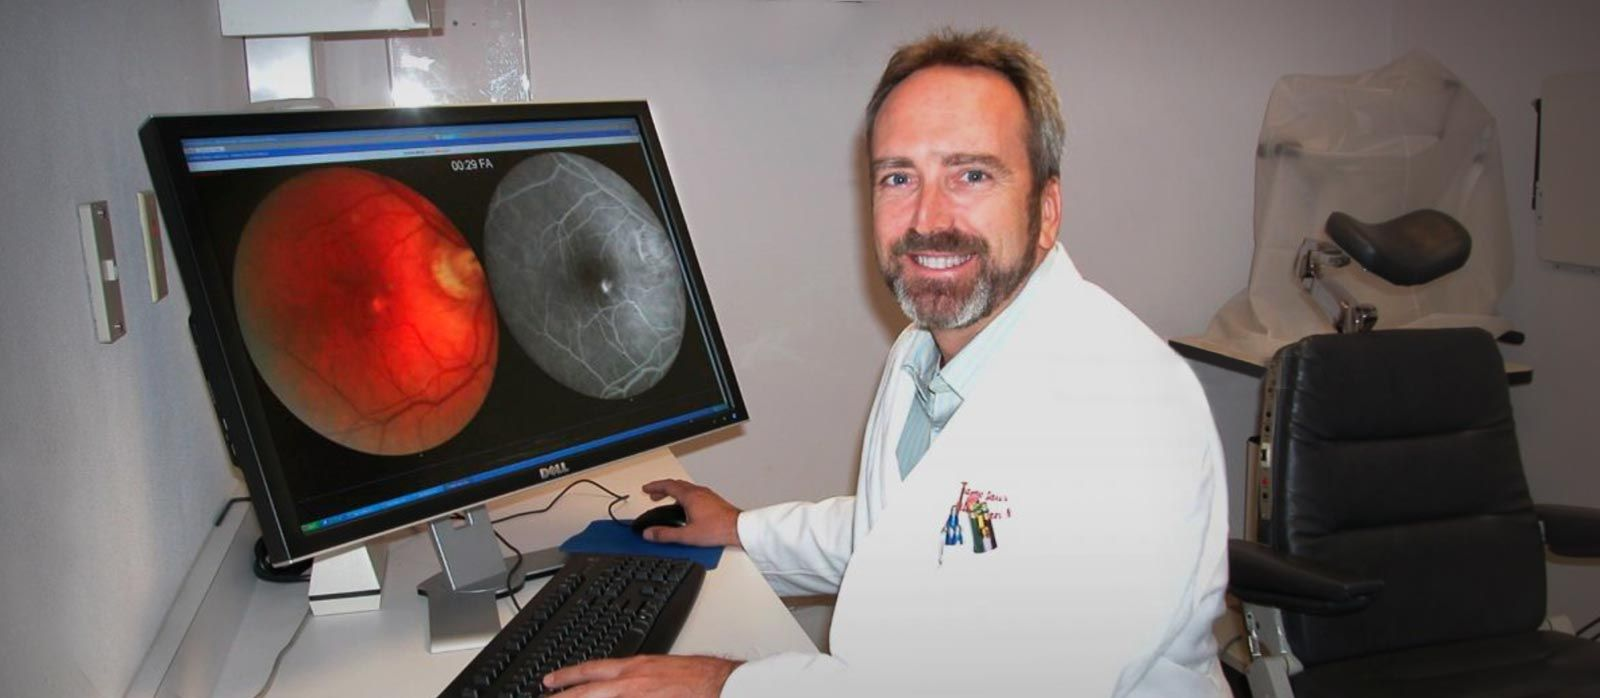 Dr. William Rodden viewing retina scan